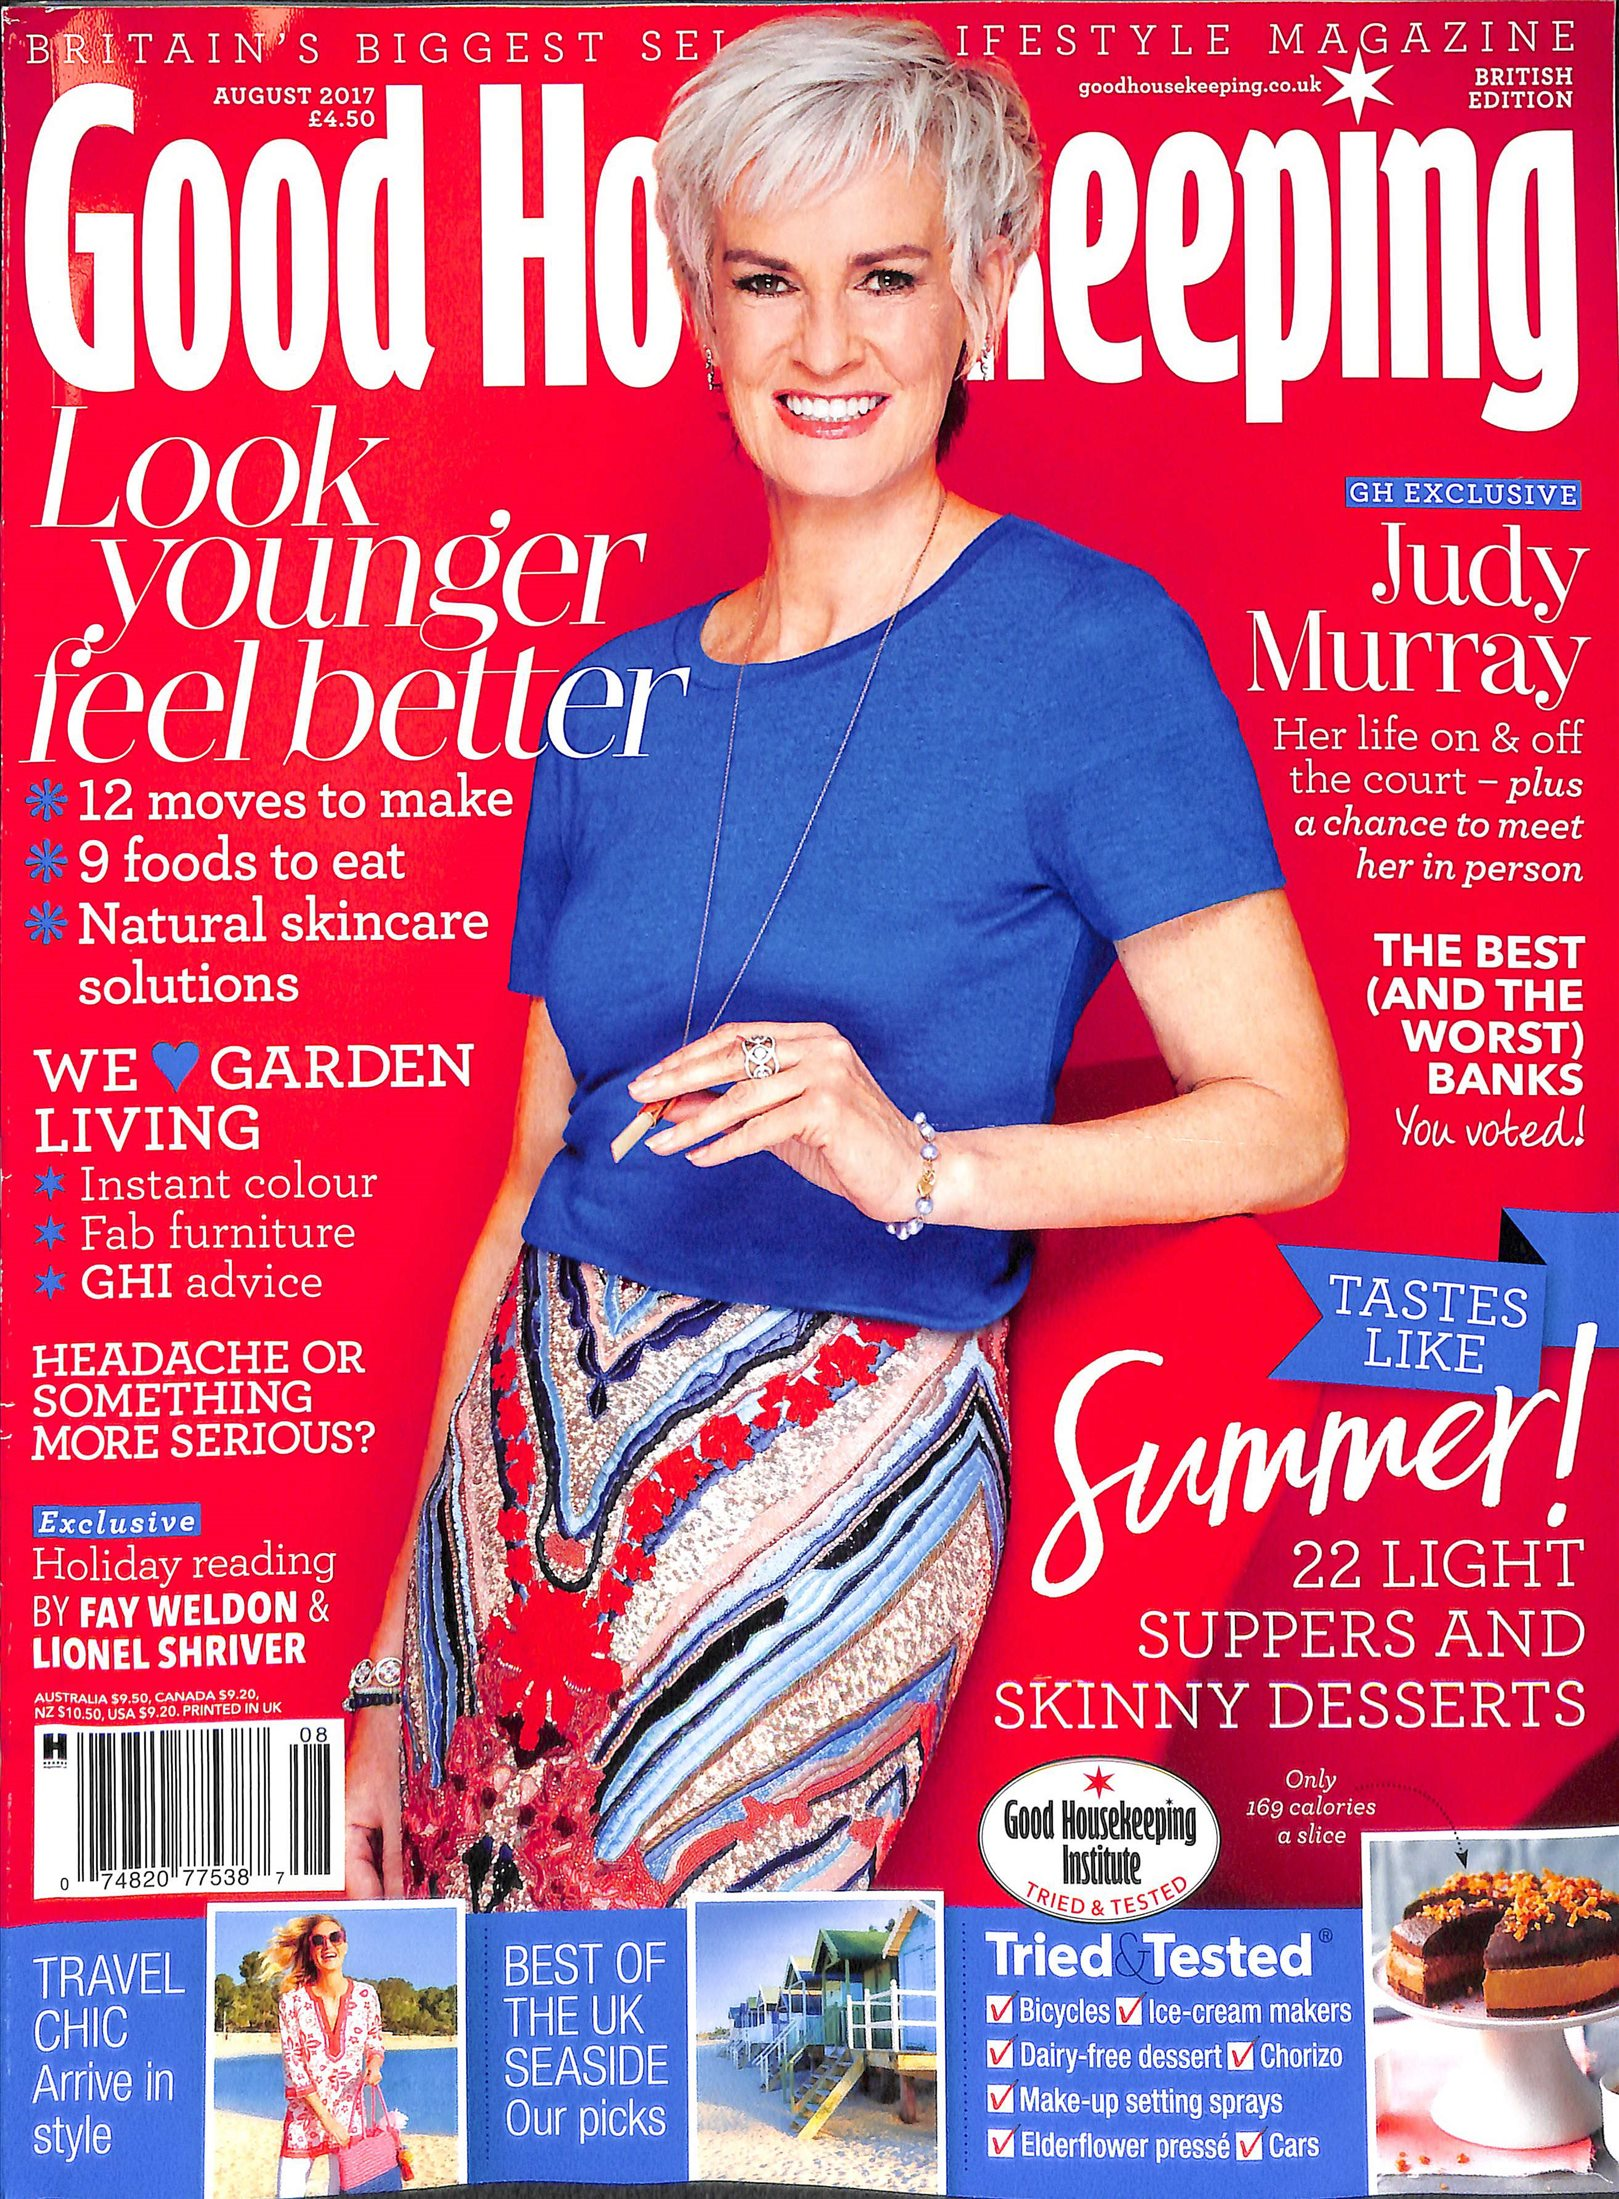 Revista Good House Keeping